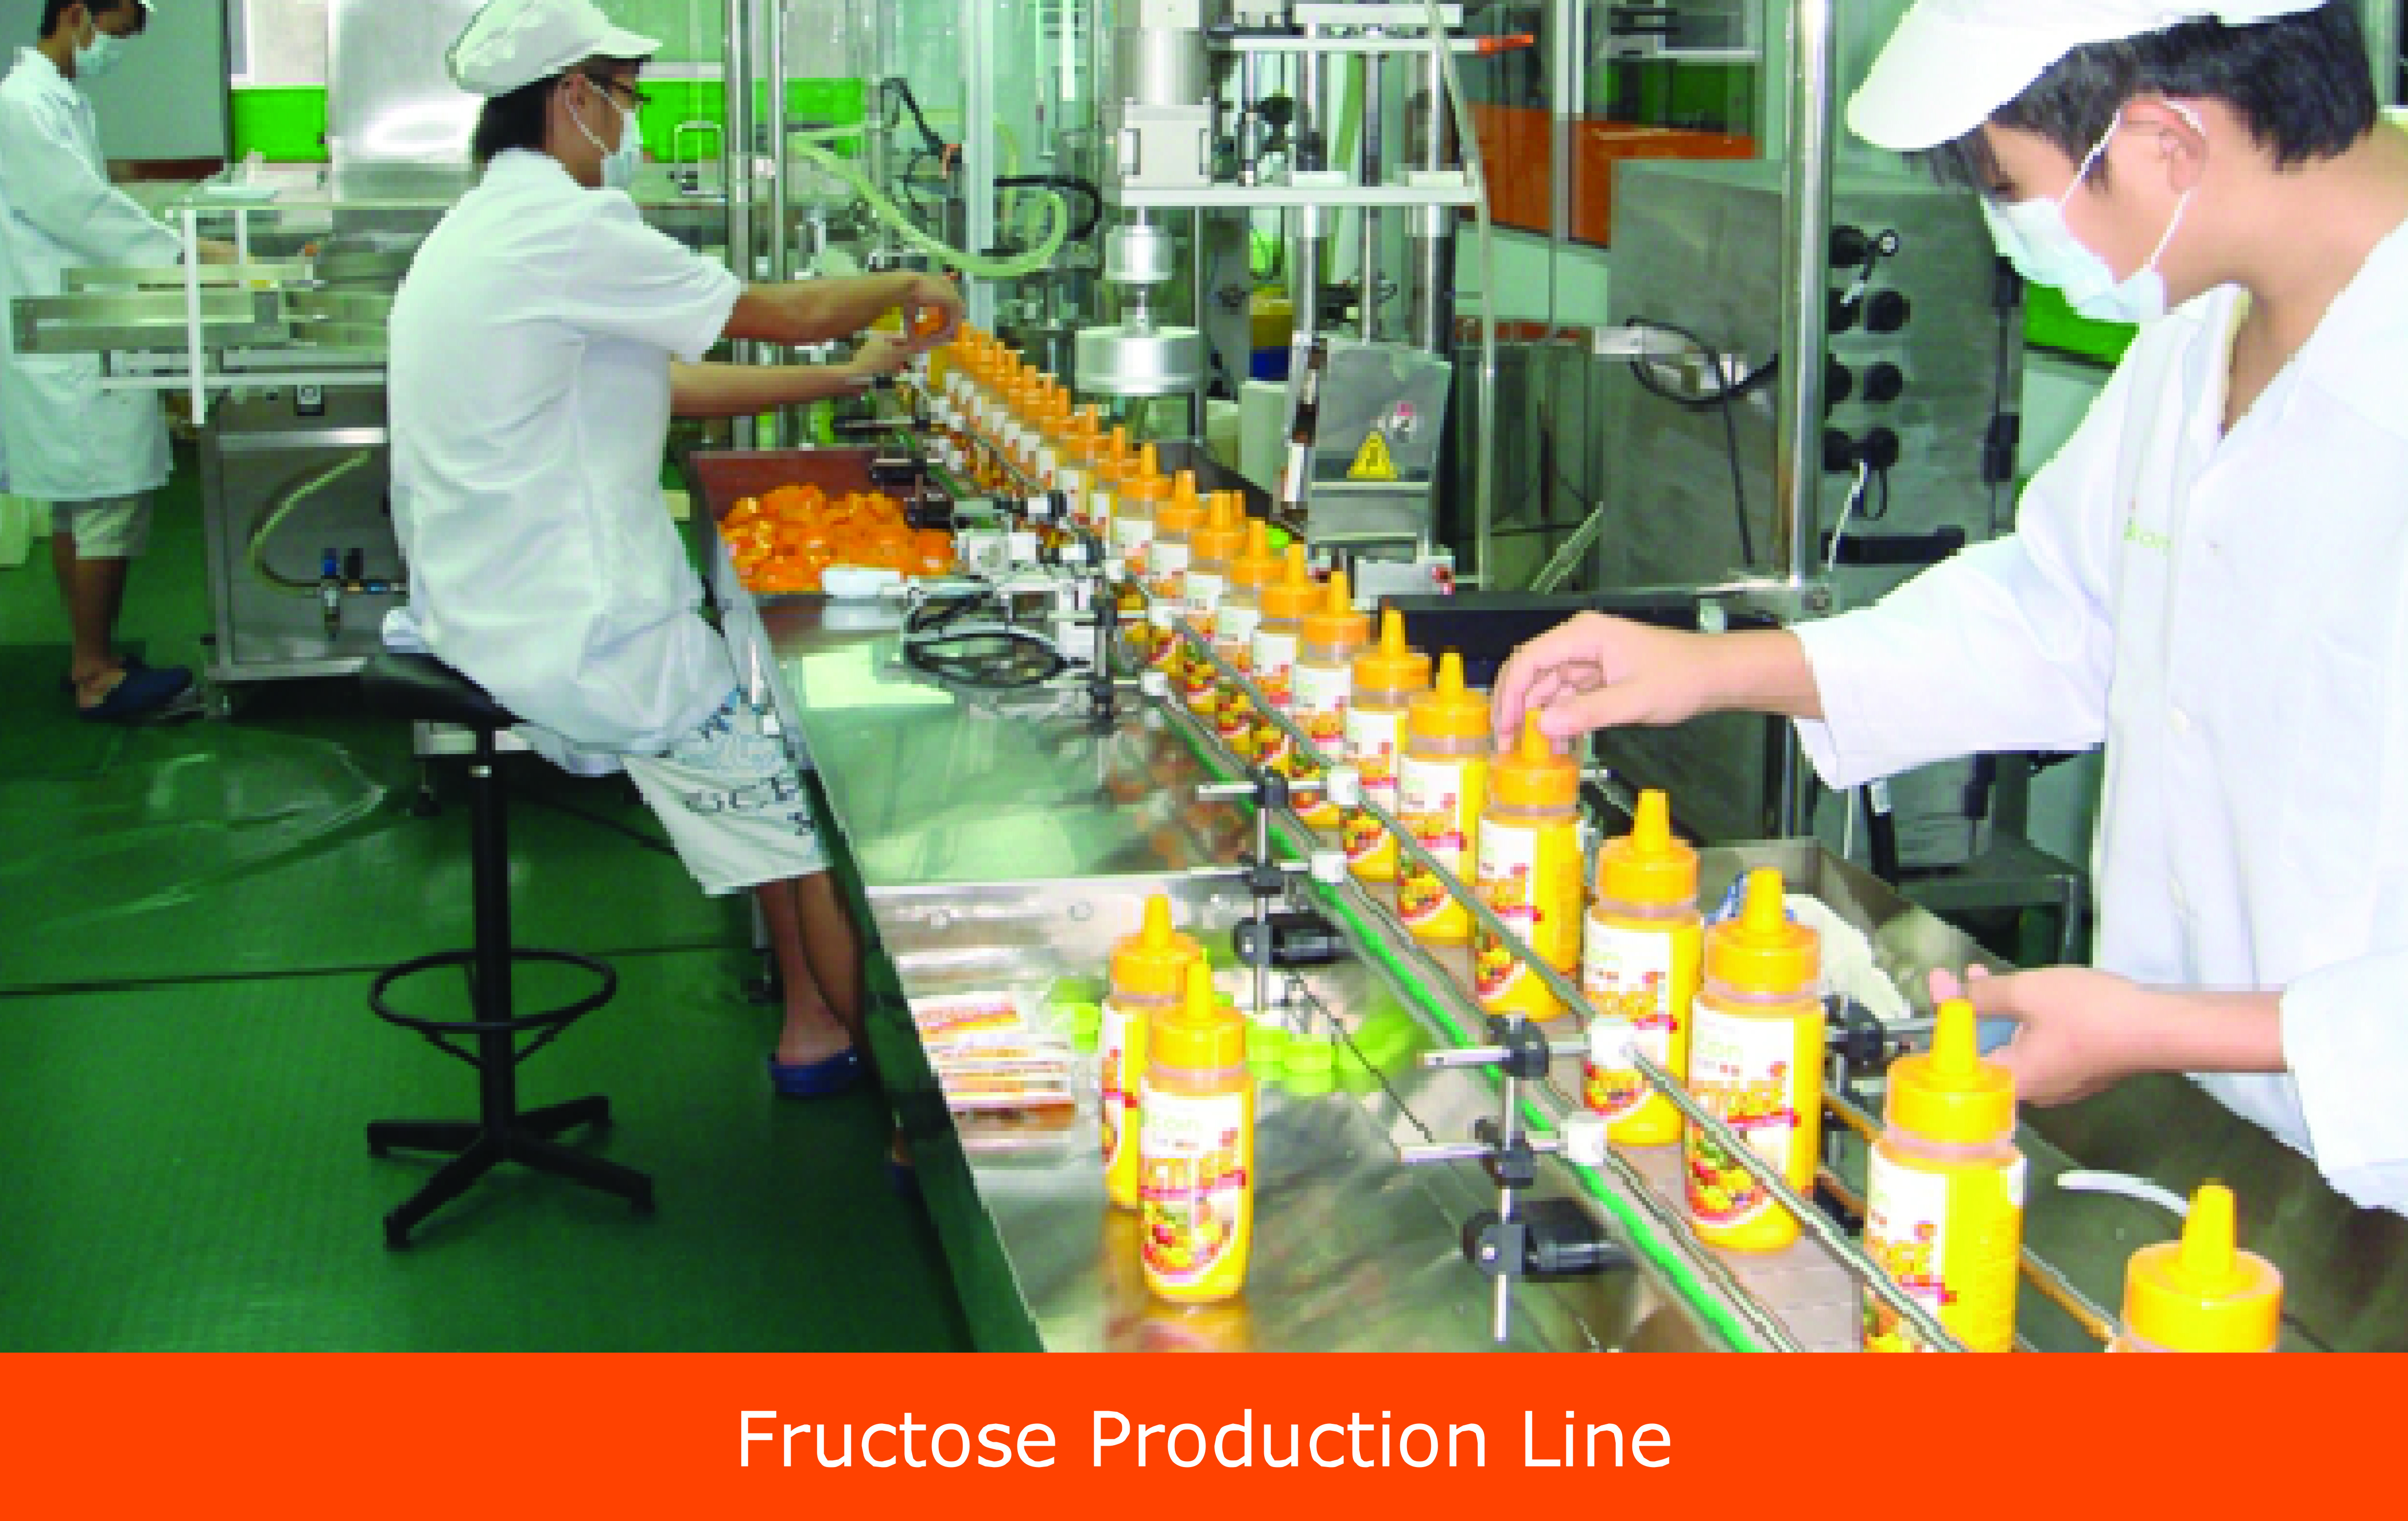 fructose12-fructose-production-line